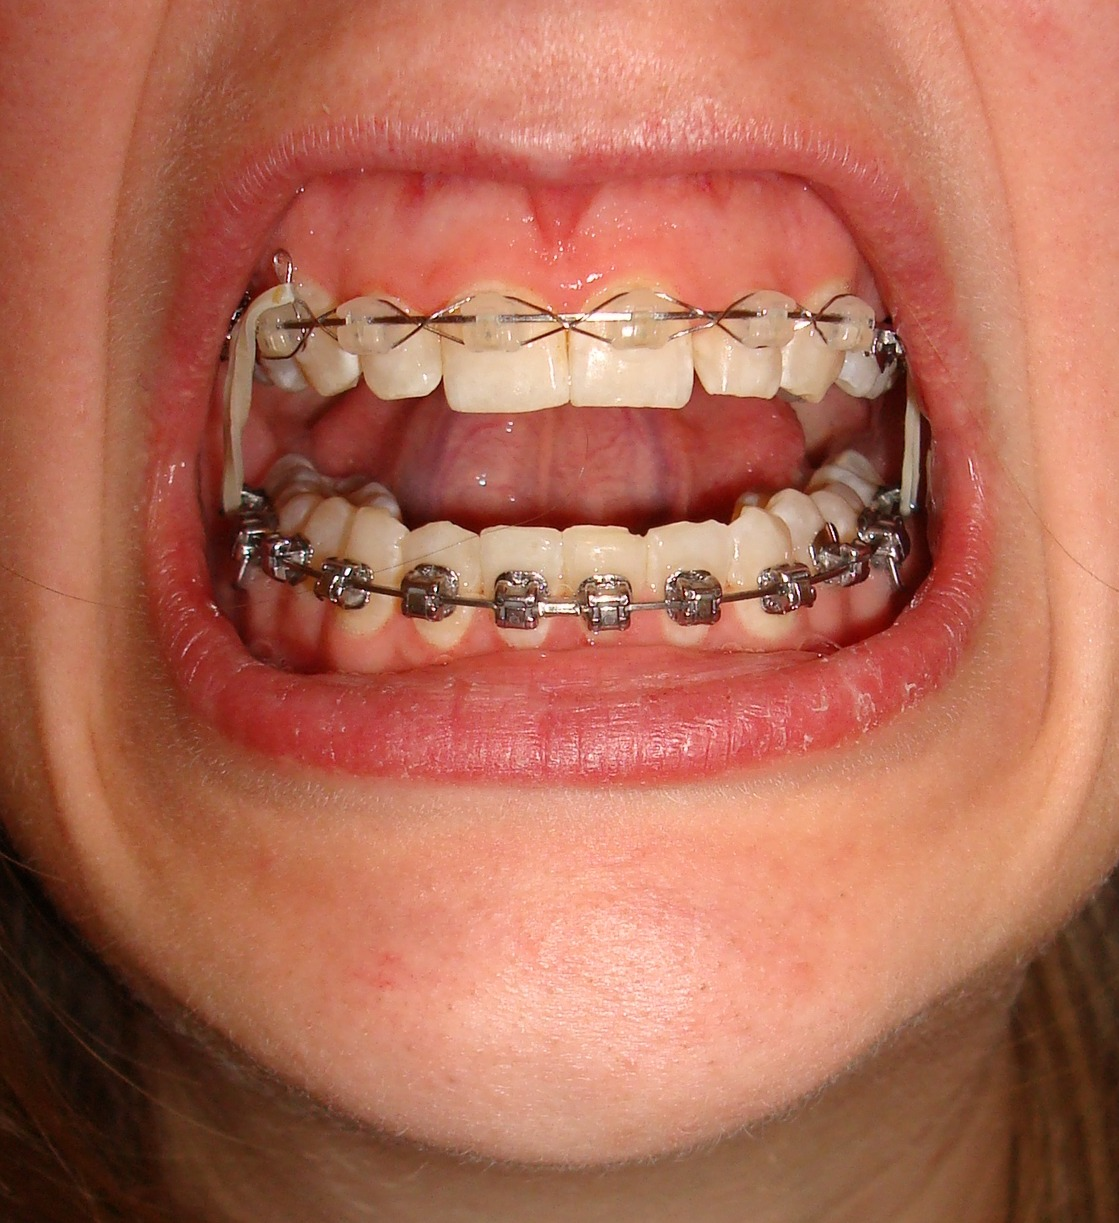 Brown Spots on Baby Teeth http://mj-tekstatelier.nl/brown-spots-on-teeth-after-braces&page=5